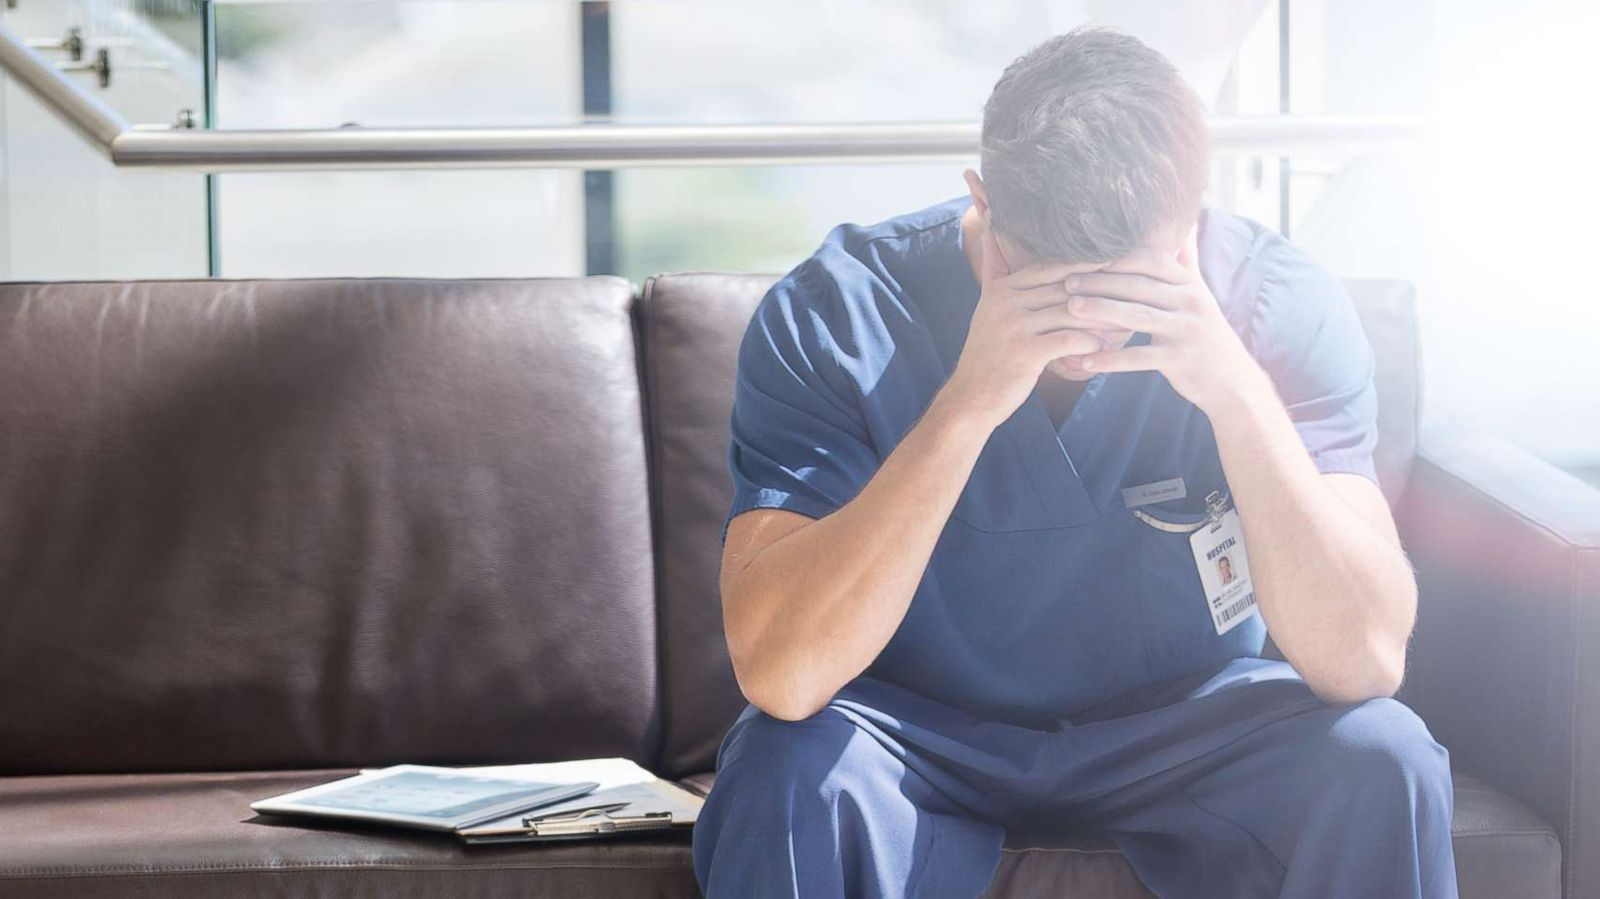 Physician burnout, depression can lead to major medical